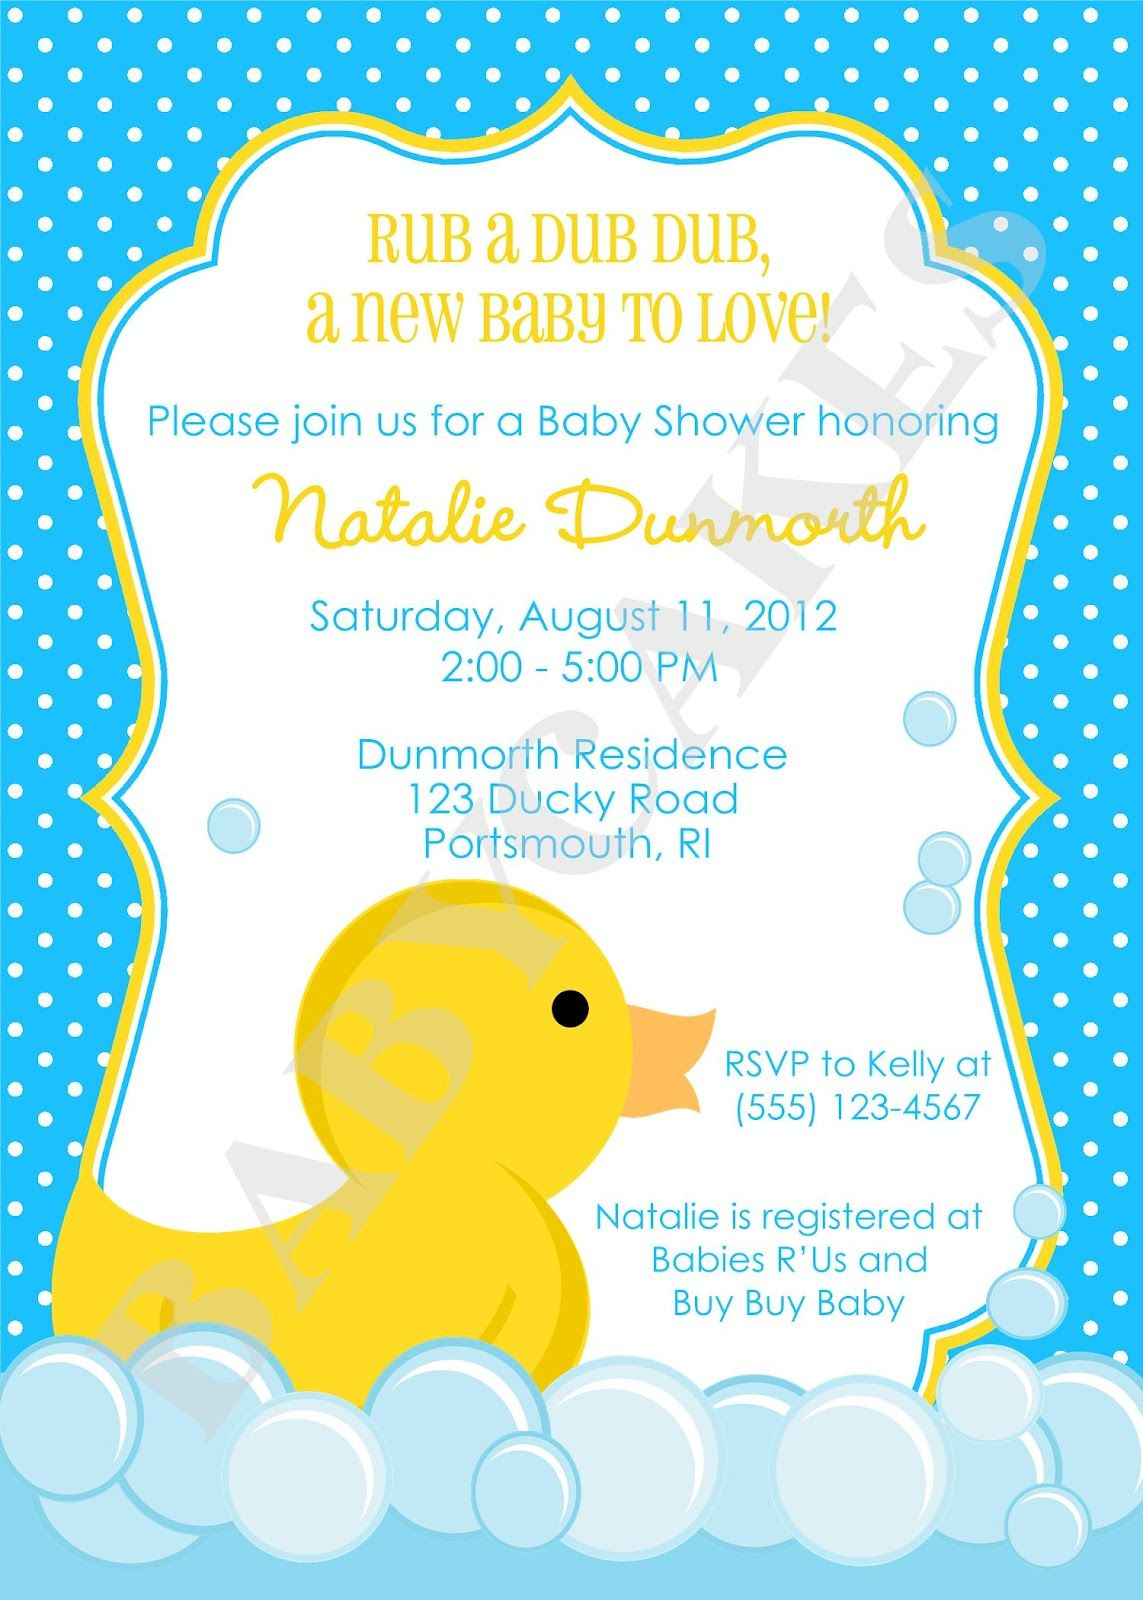 cute duck invitation Party Pinterest